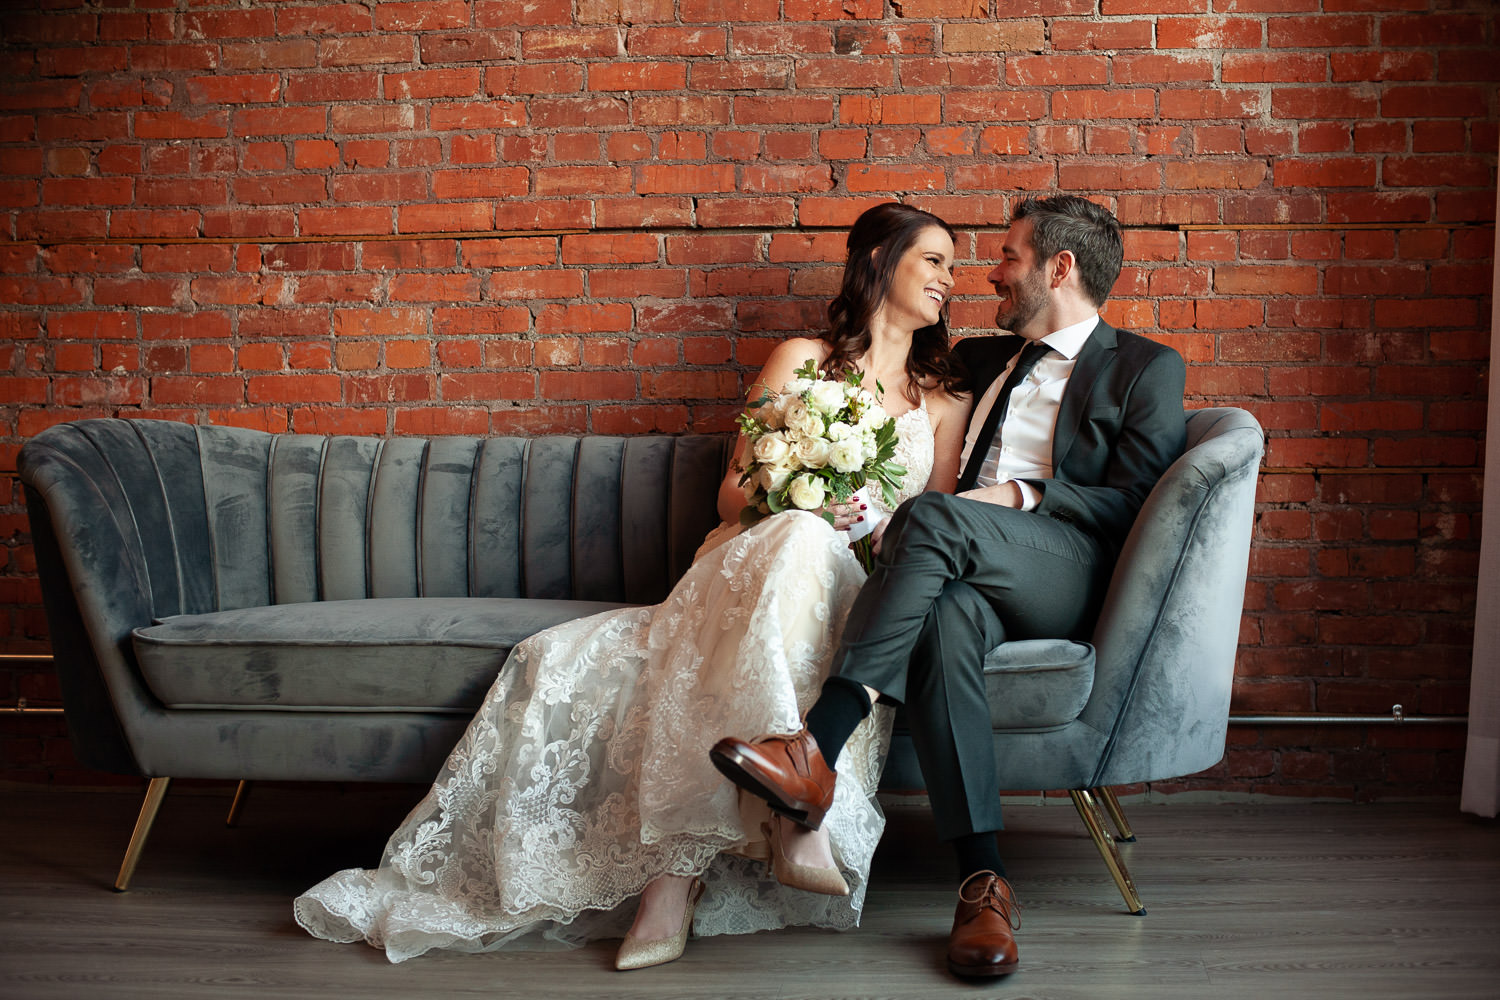 wedding photos at Venue 308 captured by Tara Whittaker Photography